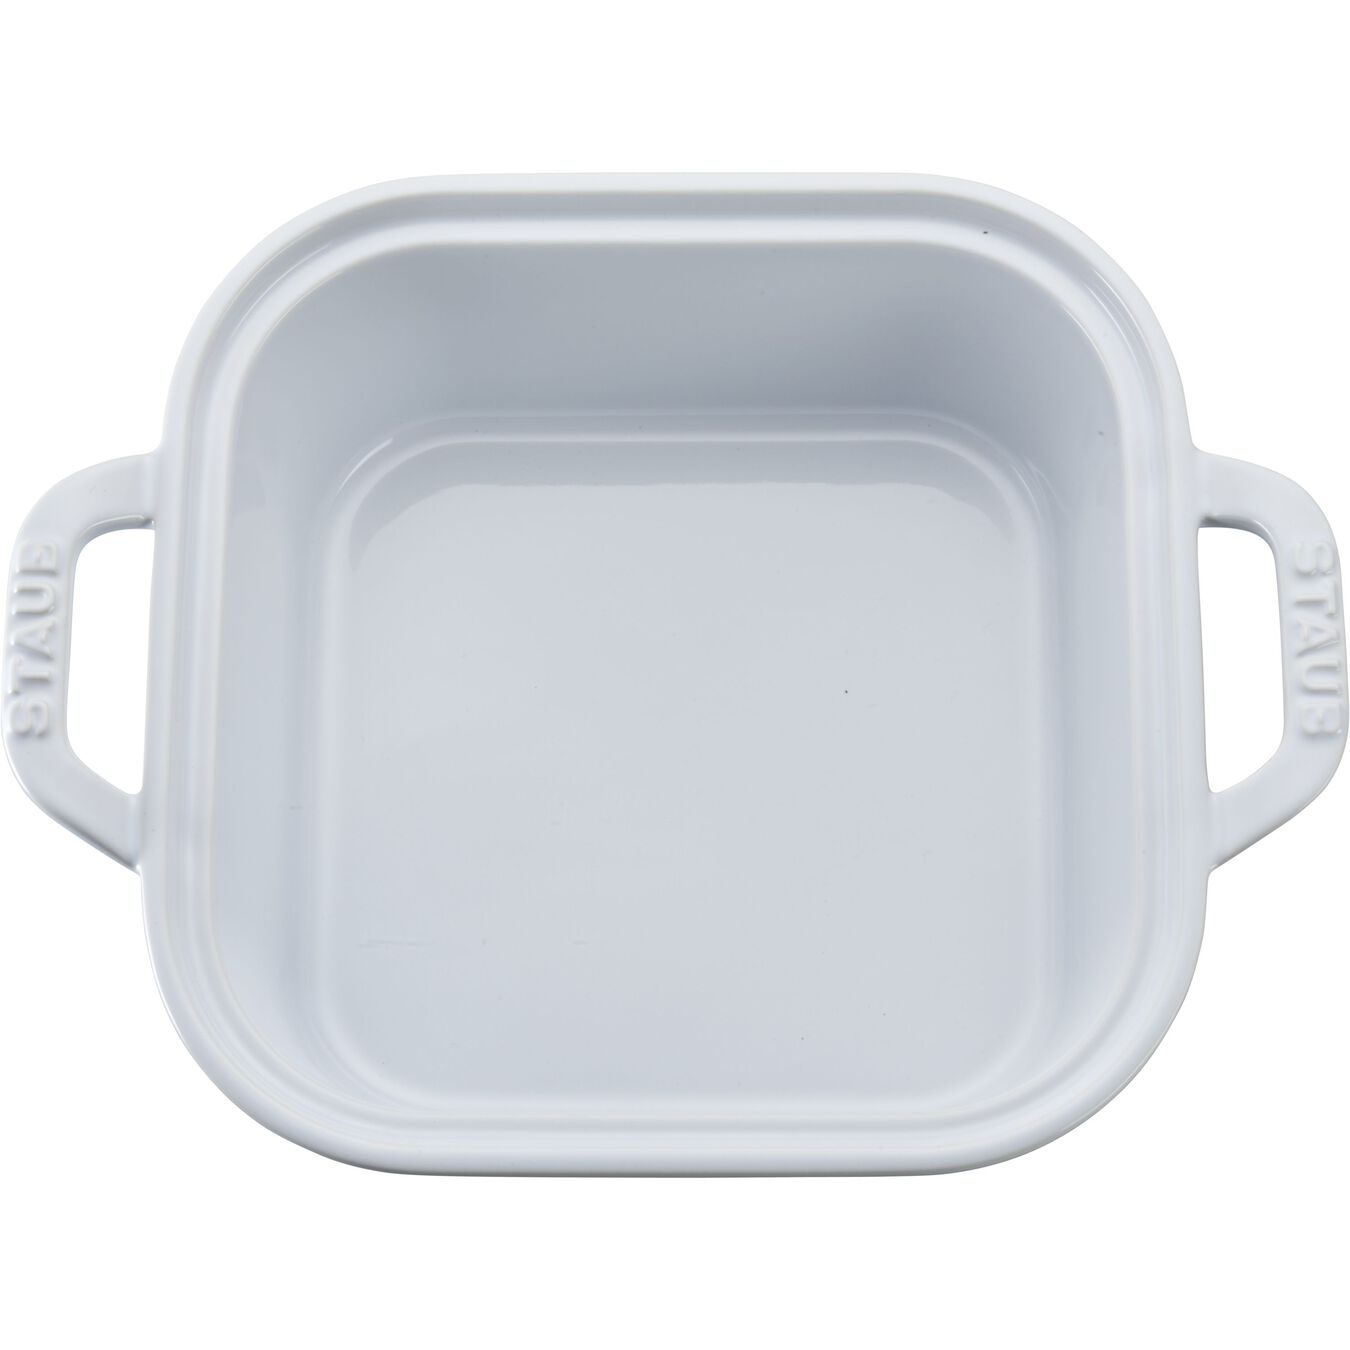 9-inch, square, Covered Baking Dish, white,,large 6